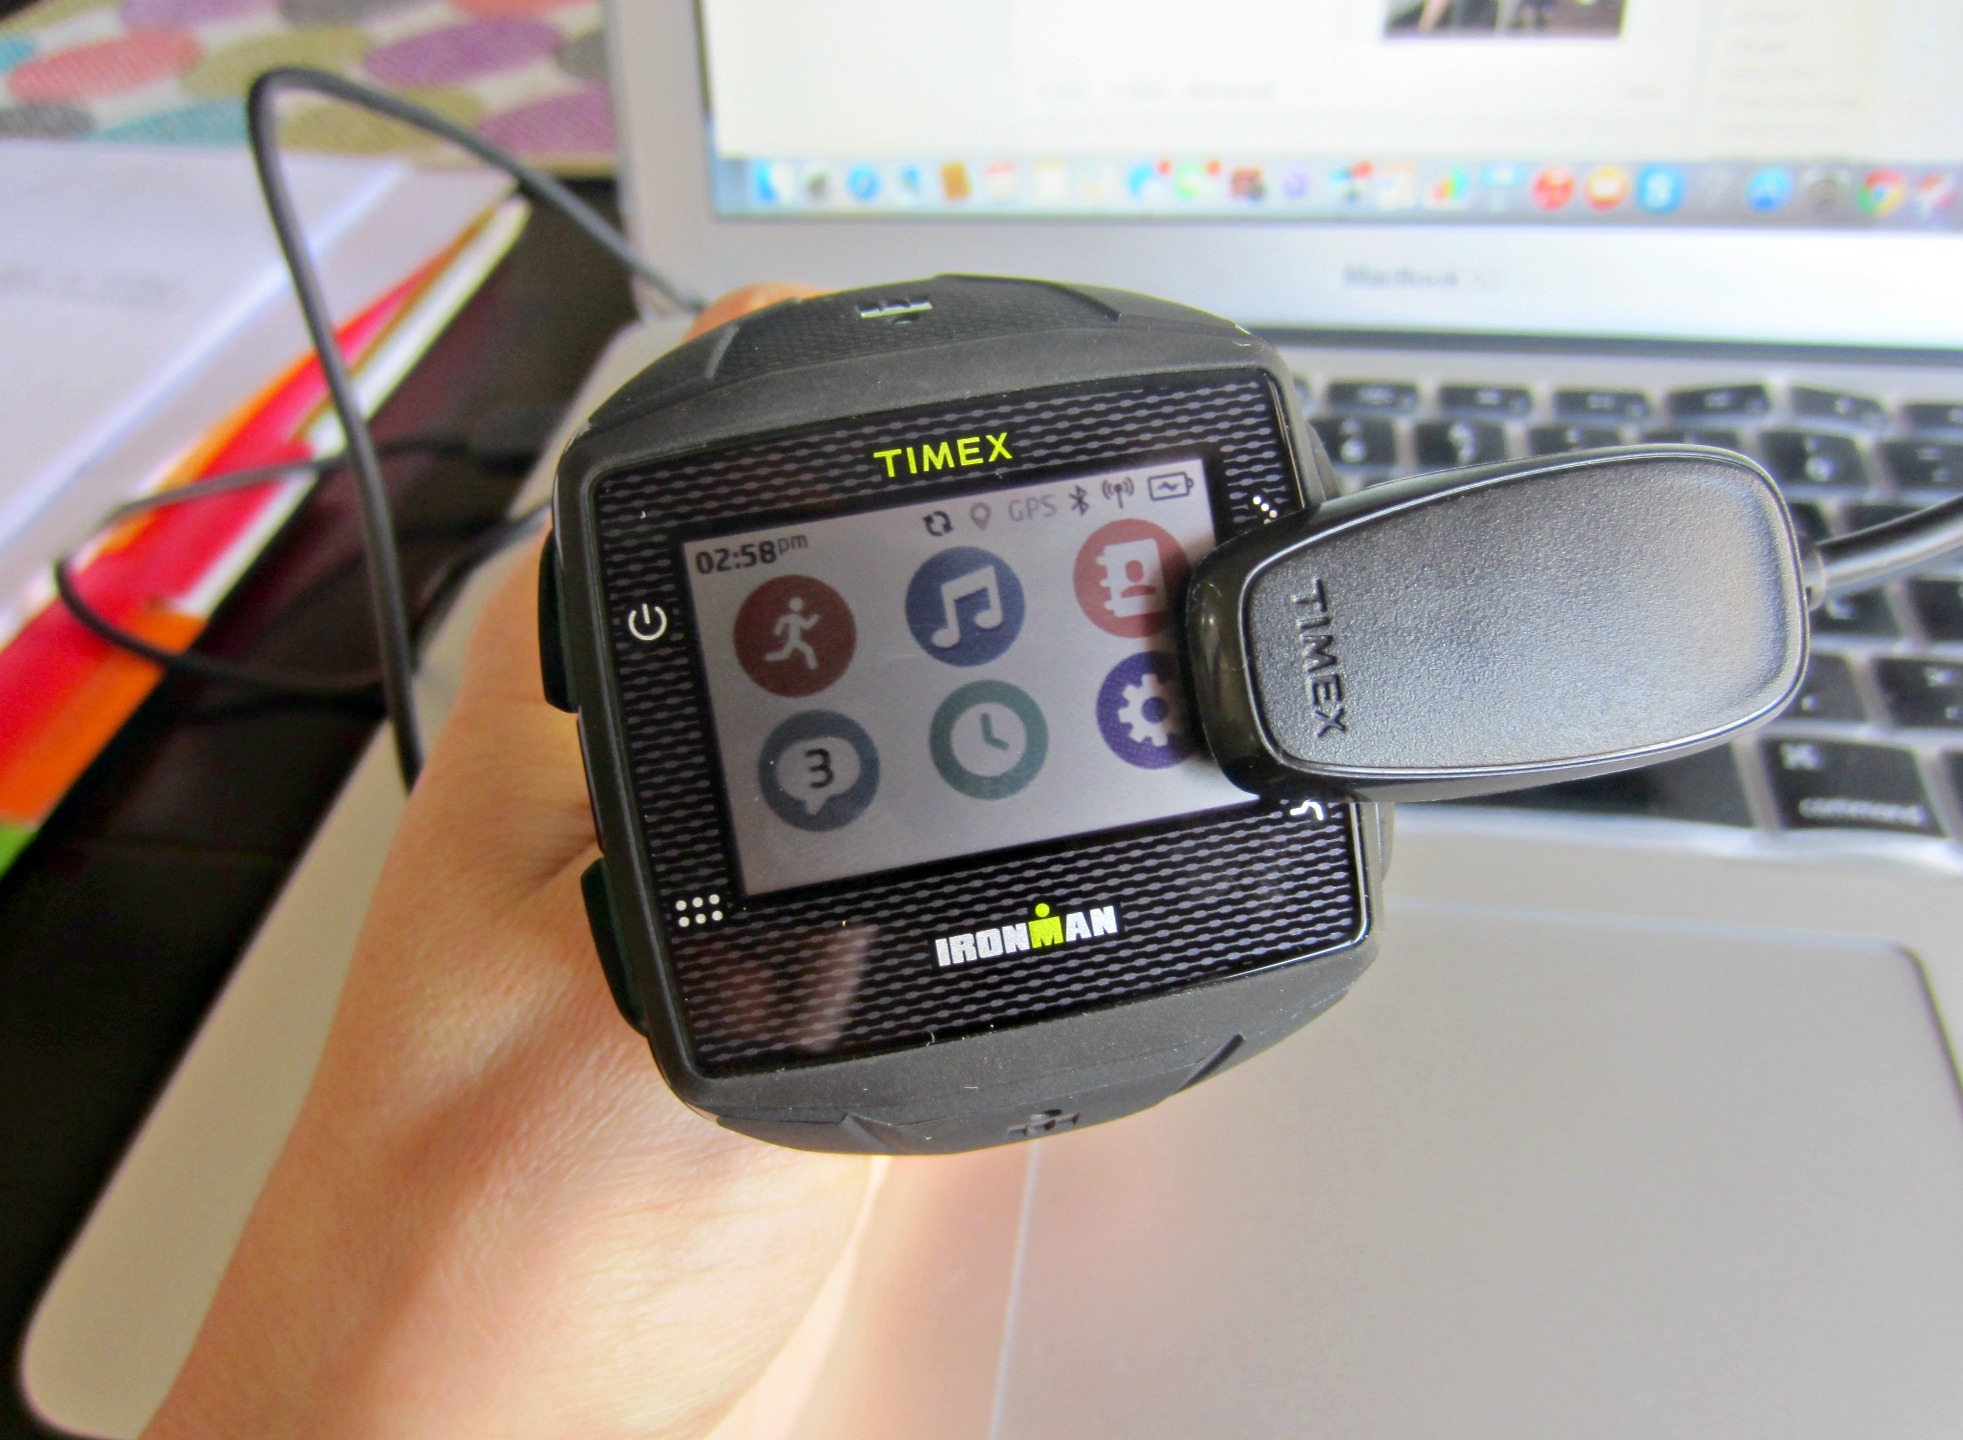 Timex GPS One+ fitness watch